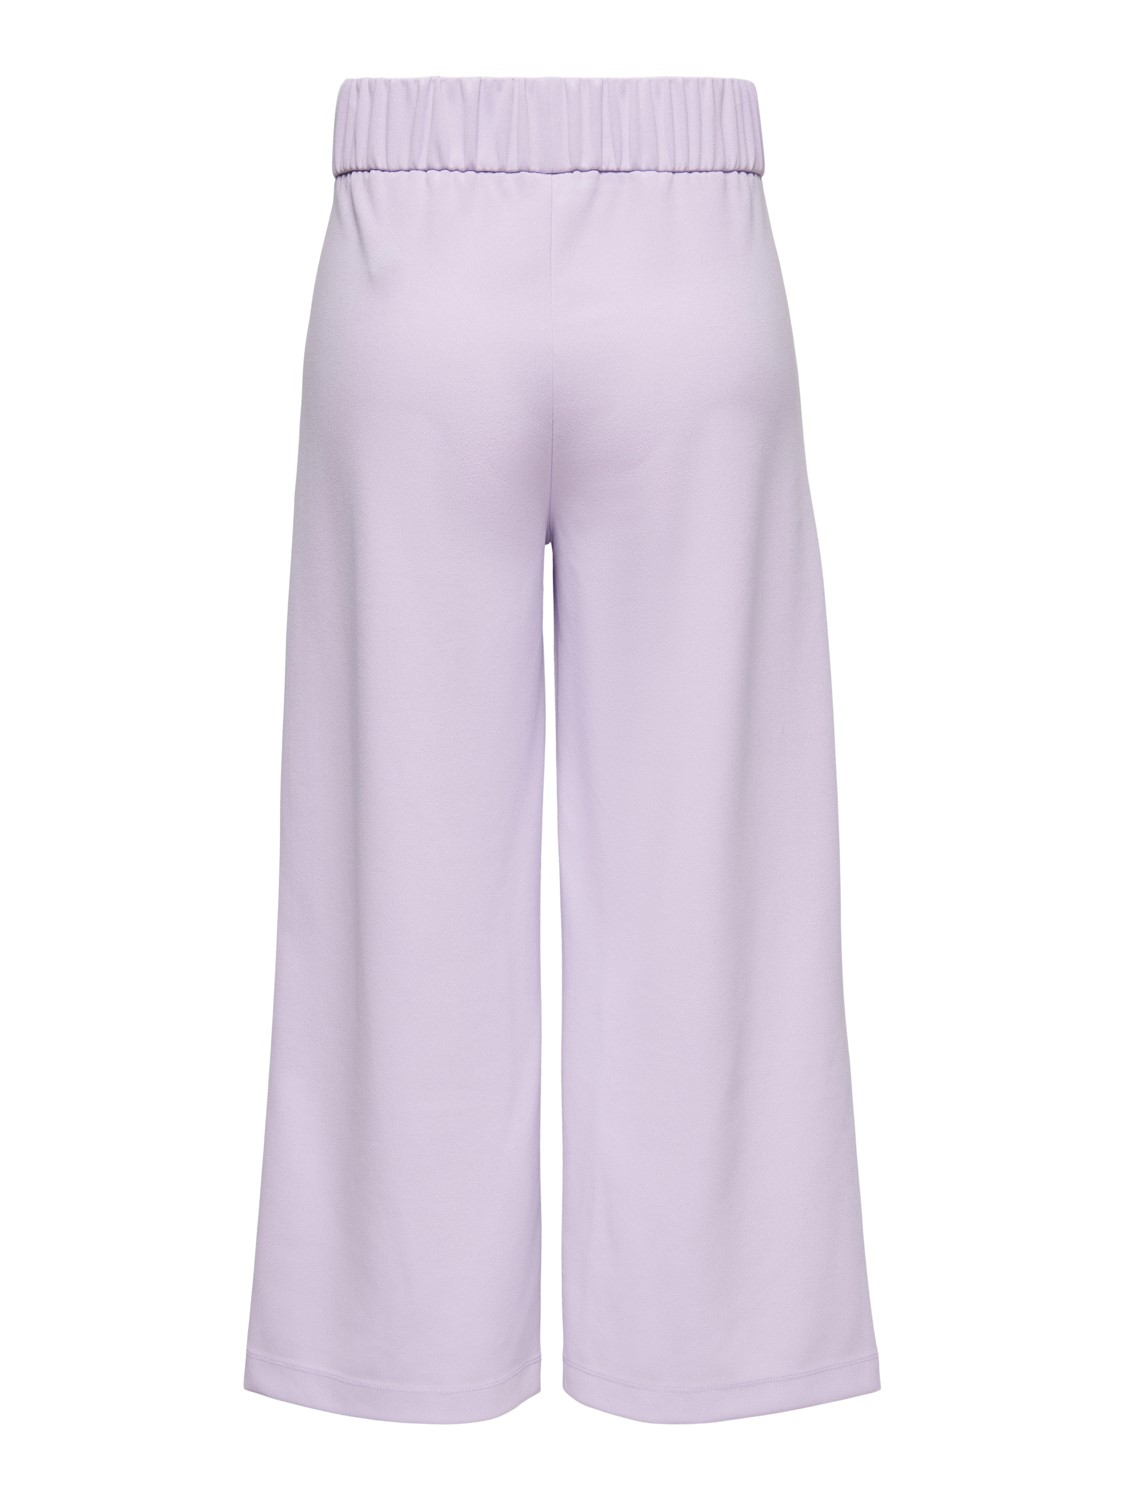 gallery-3685-for-15208417-pastel lilac